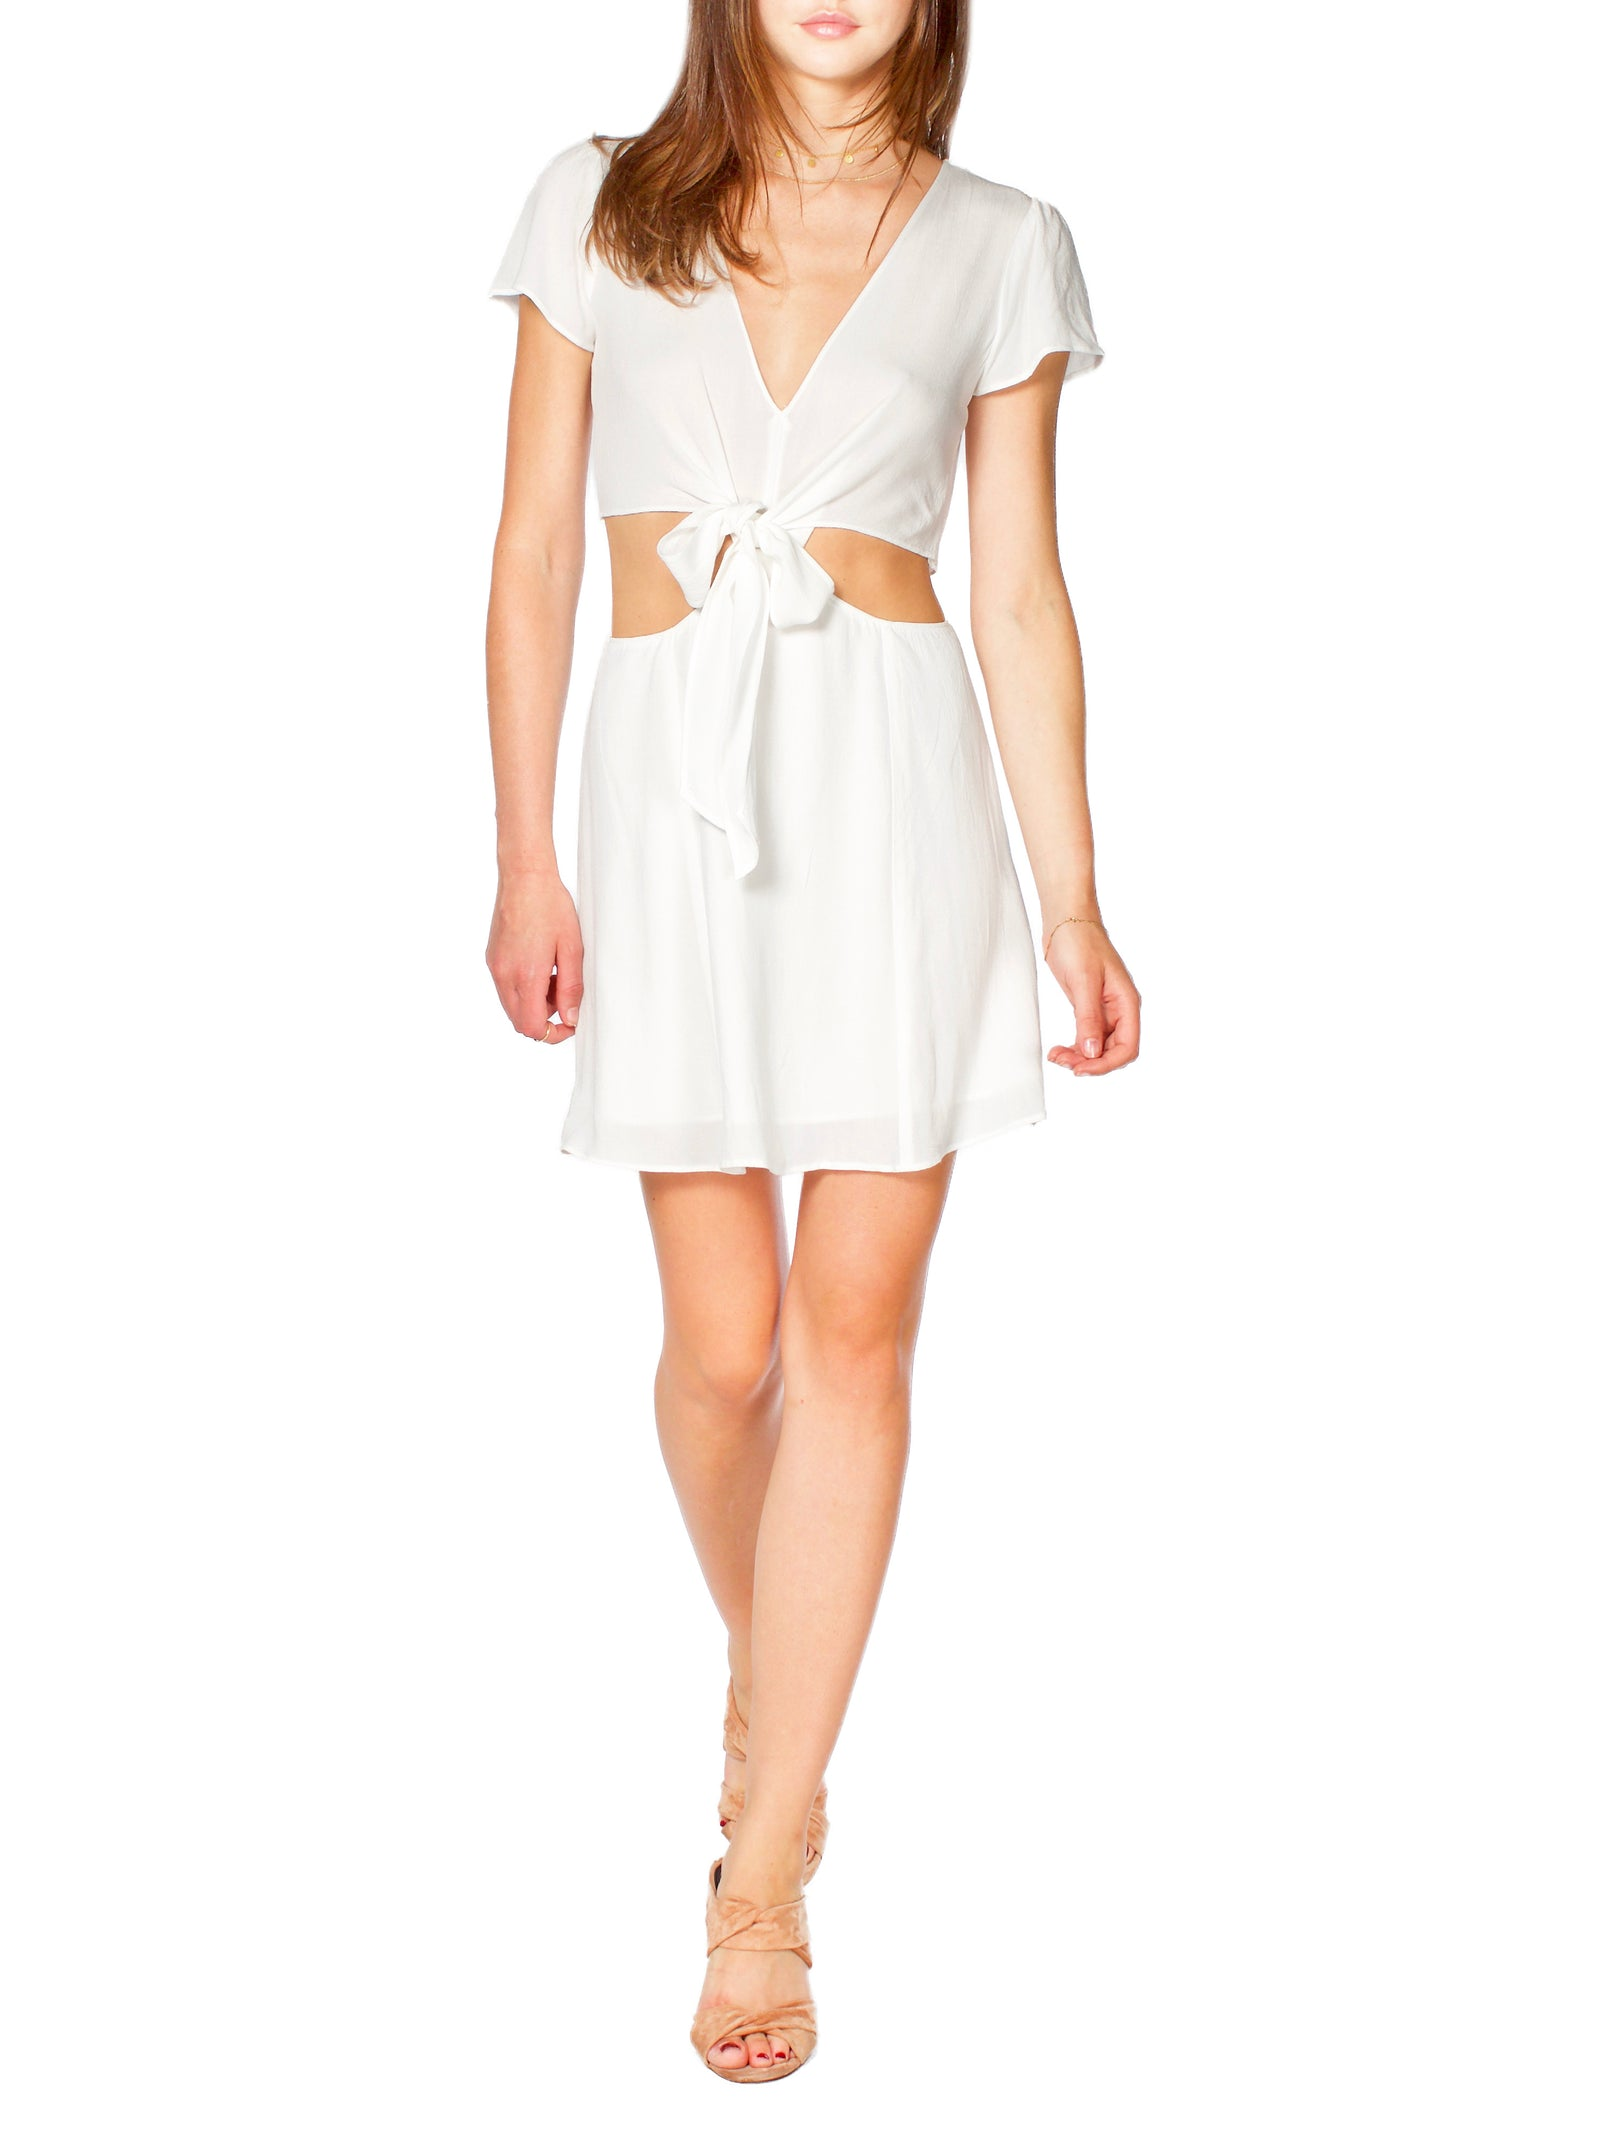 Trixy Tie Front White Dress